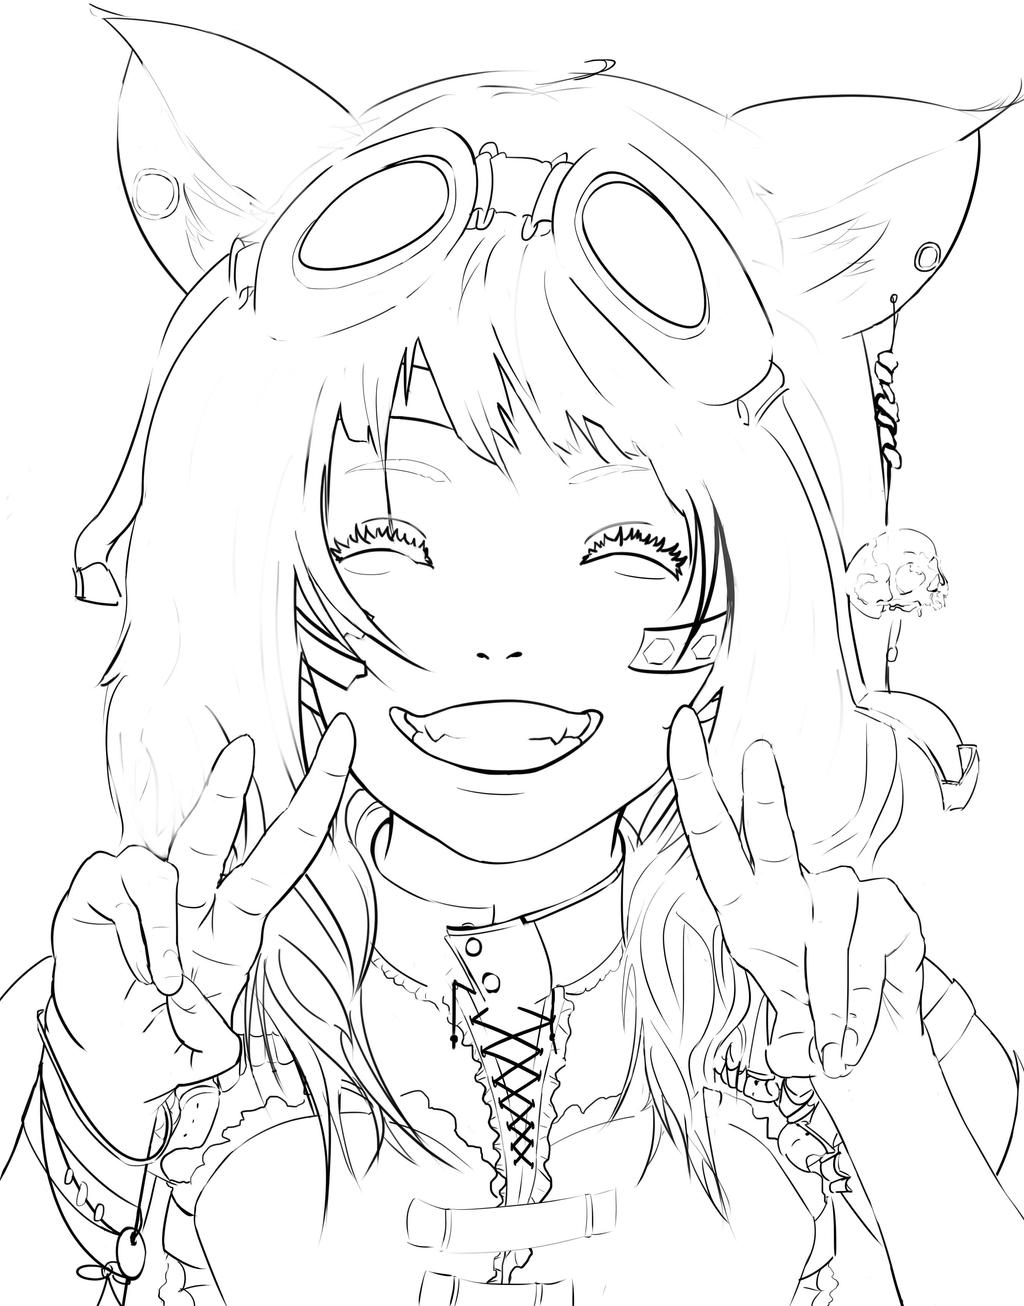 Line Drawings From D Models : Steampunk anime girl linework by diehardpizzalover on